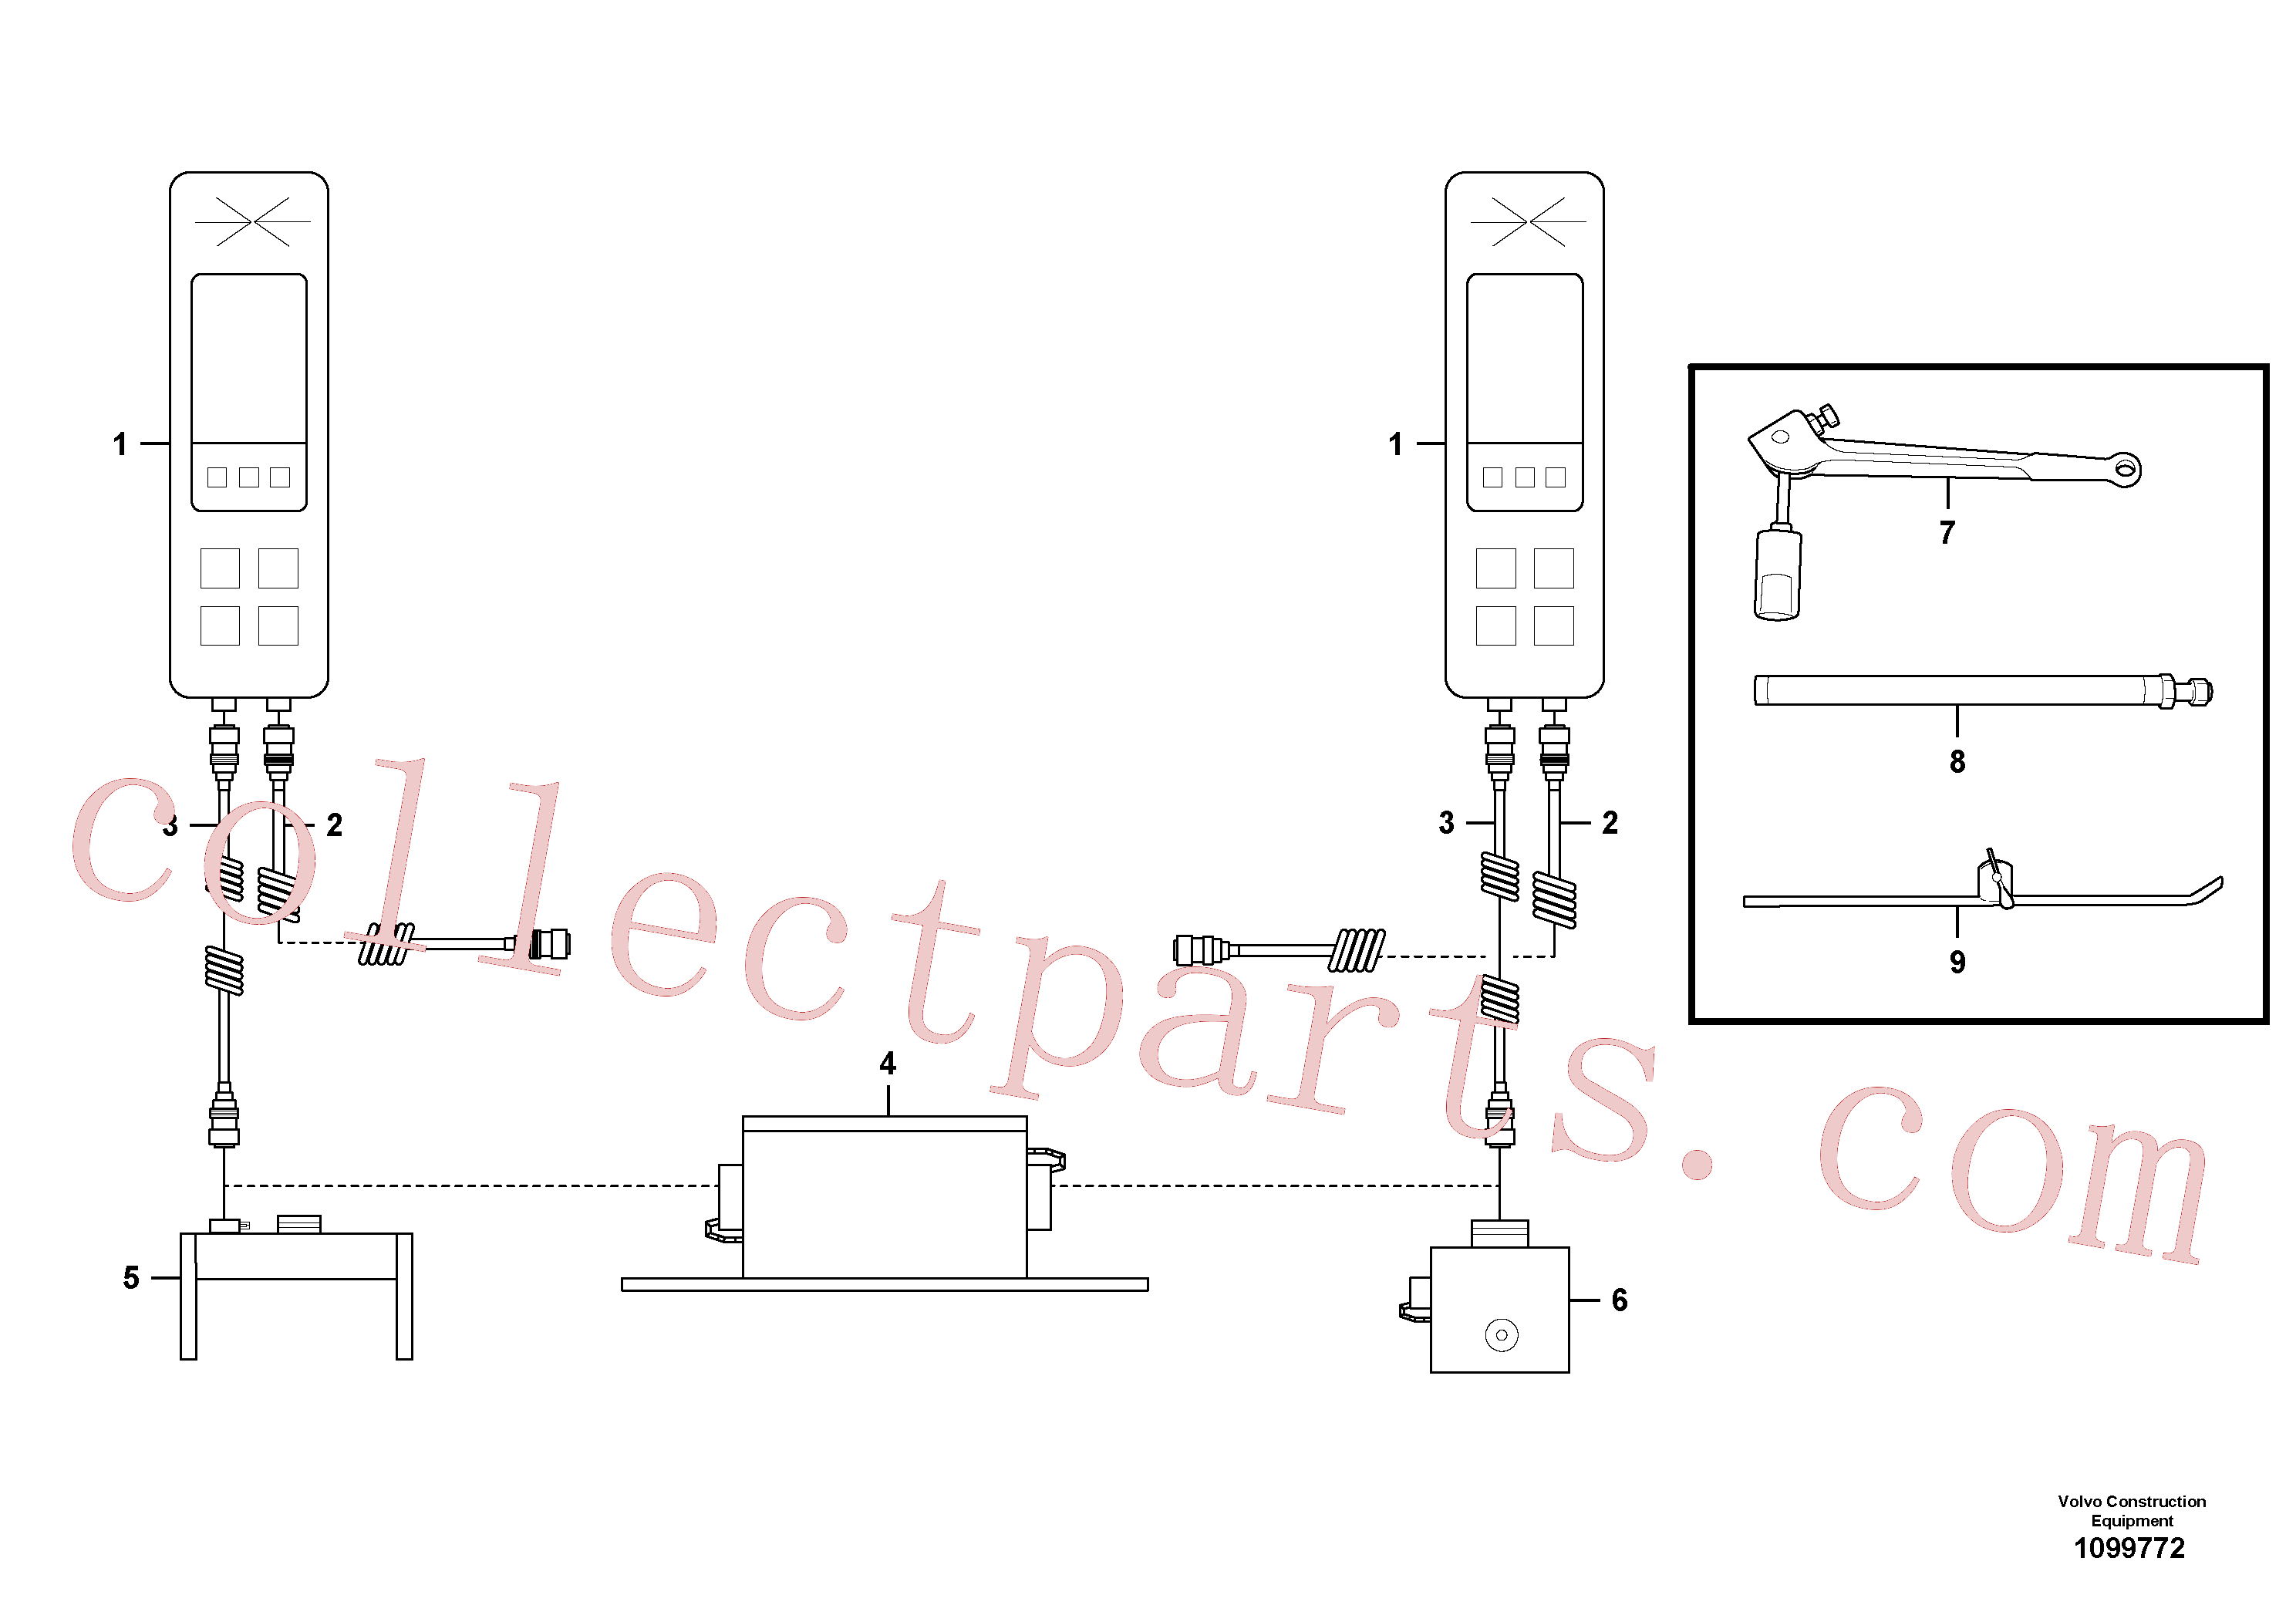 RM13913058 for Volvo Levelling Kit(1099772 assembly)